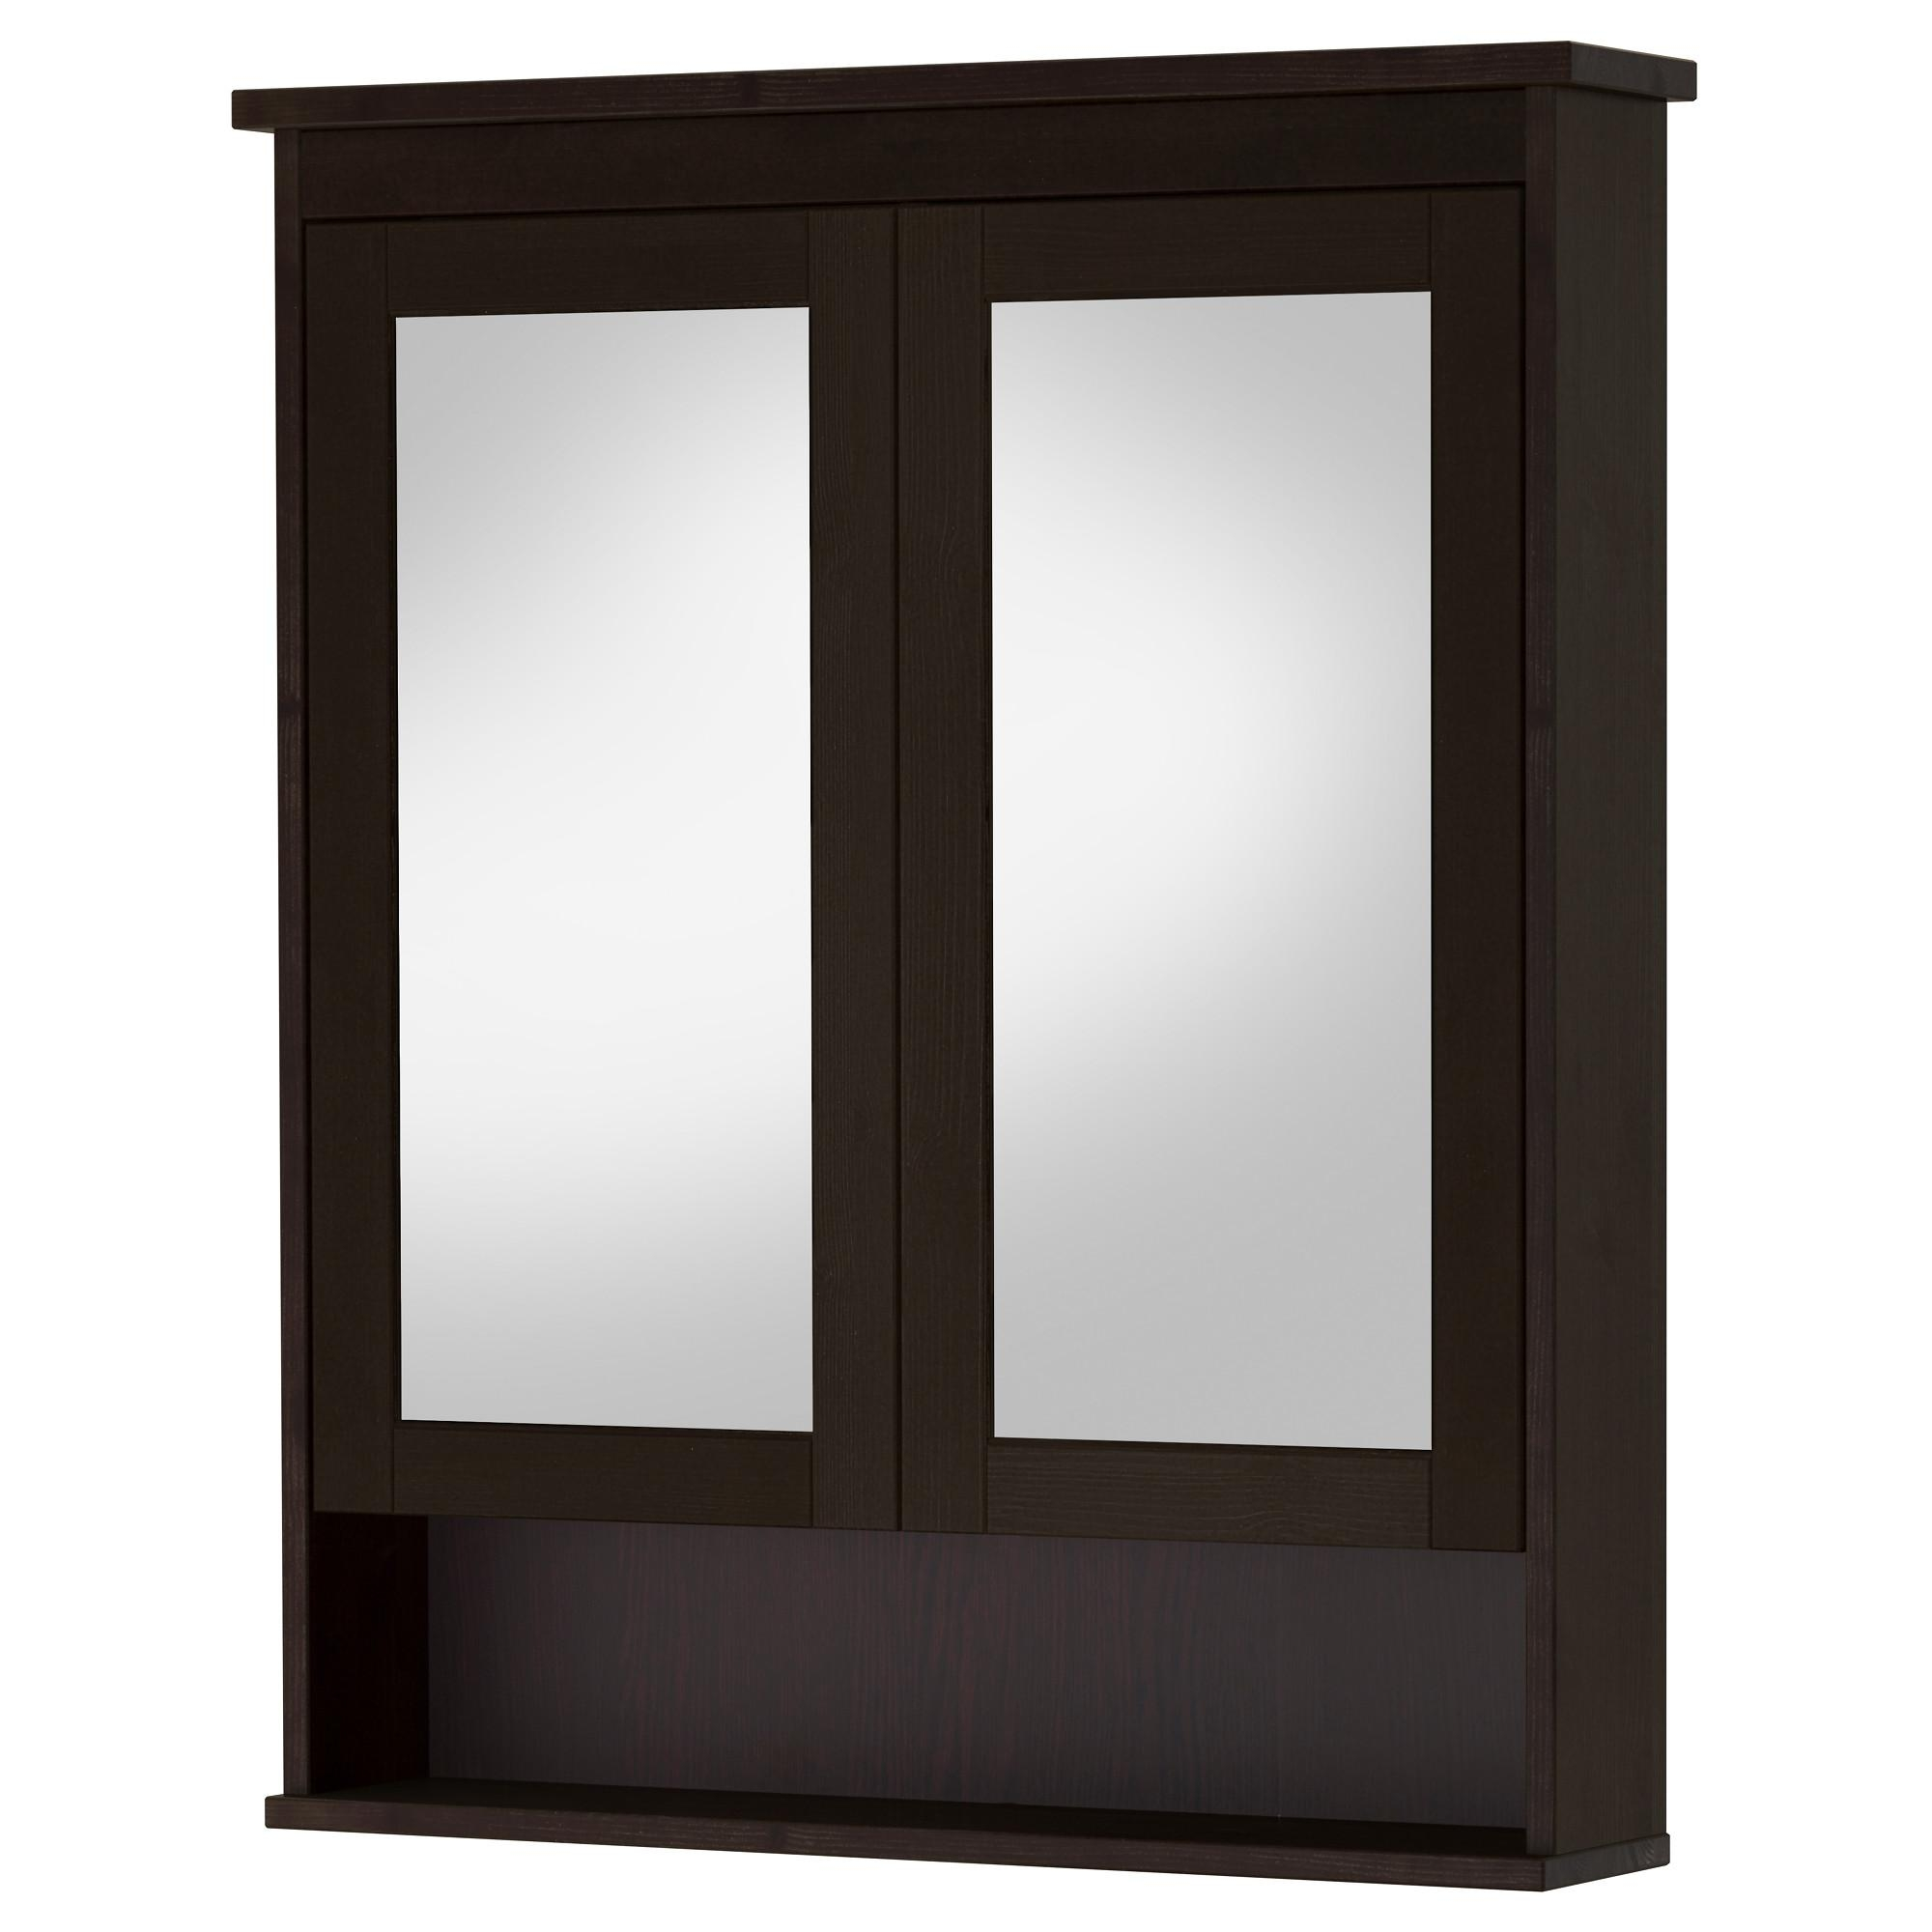 Hemnes Mirror Cabinet With 2 Doors – Black Brown Stain, 32 5/8X6 1 Within Black Mirrored Cabinet (Image 15 of 20)